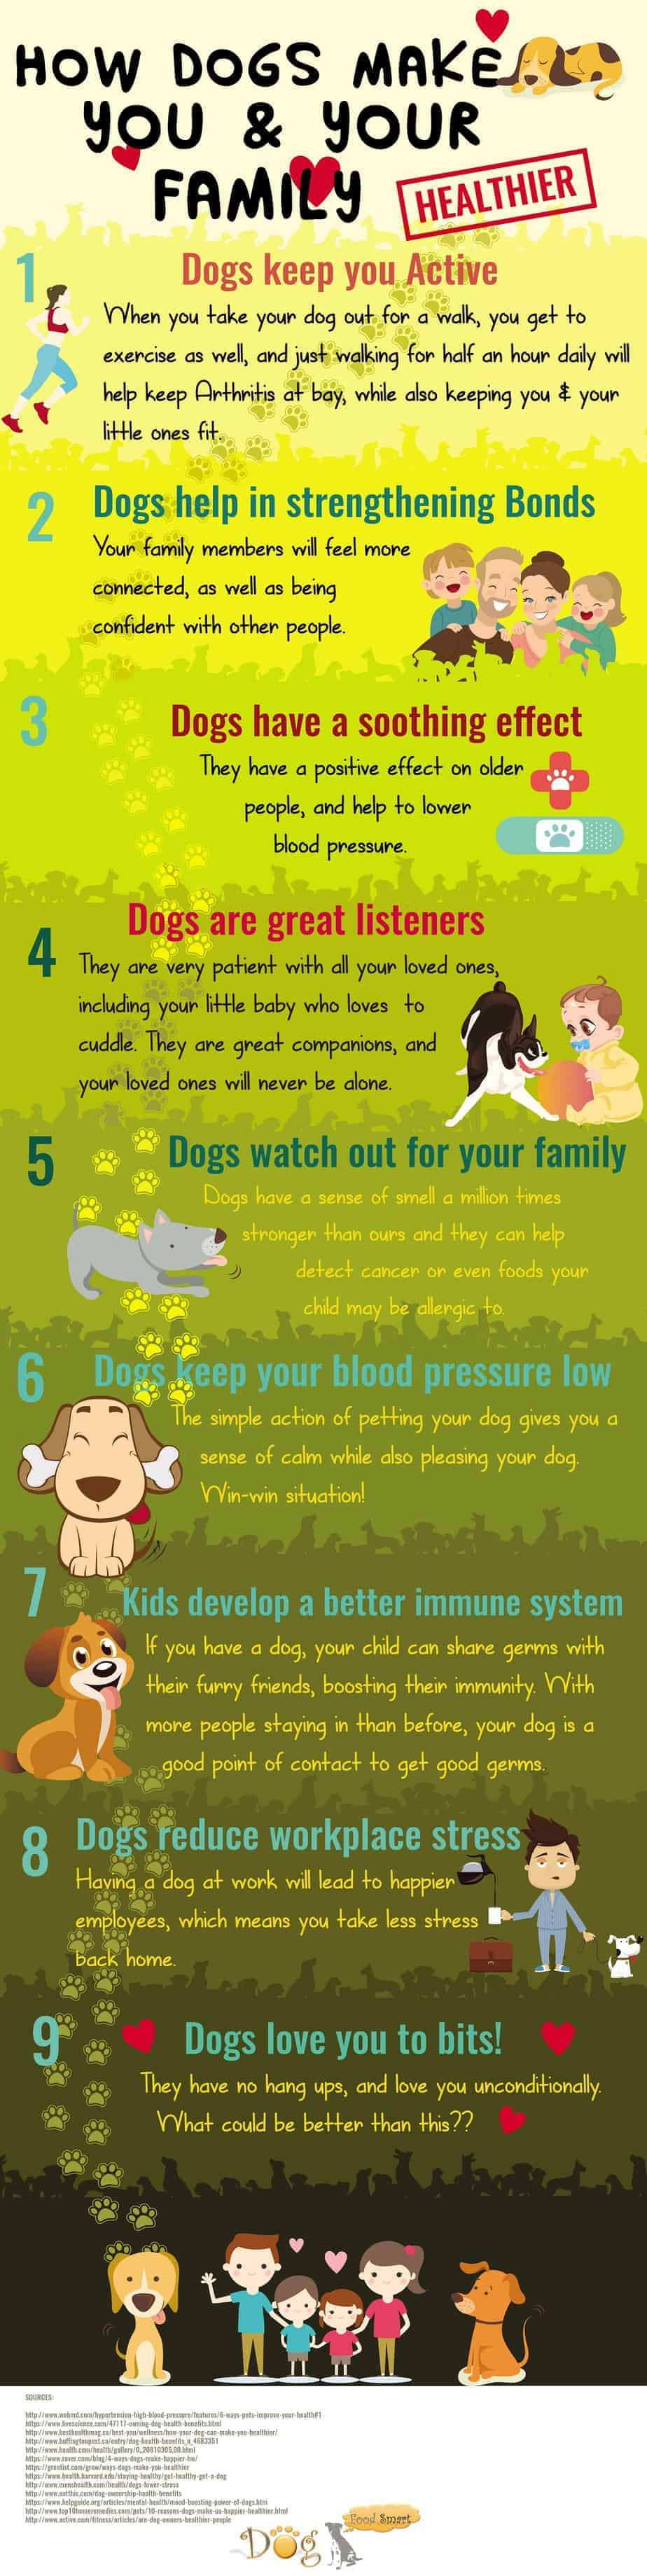 Dogs Make you healthier graphic Courtesy Dog Food Smart